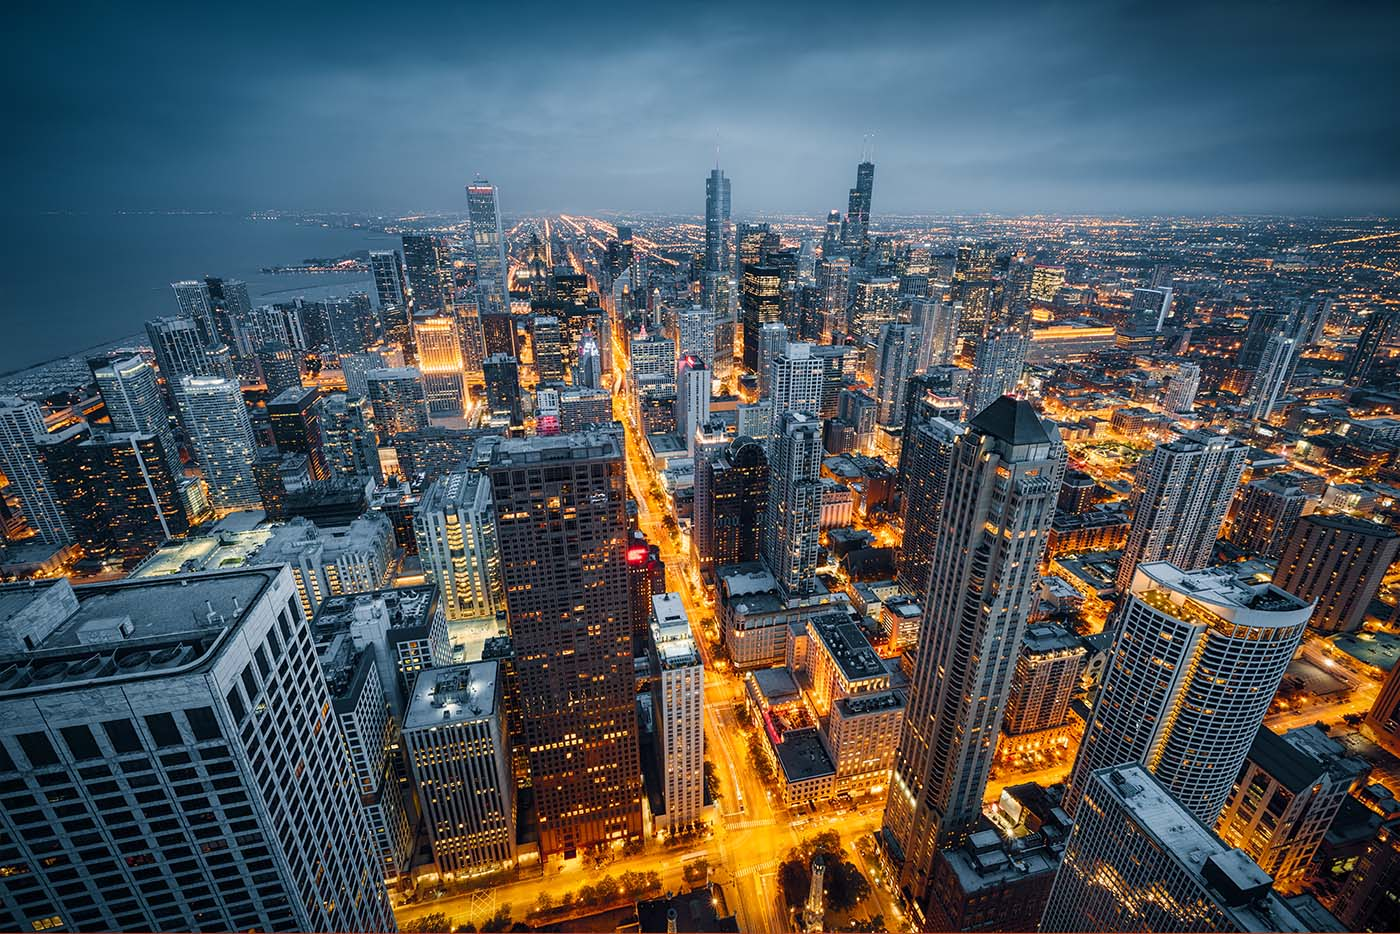 Chicago Skyline at Night colorized